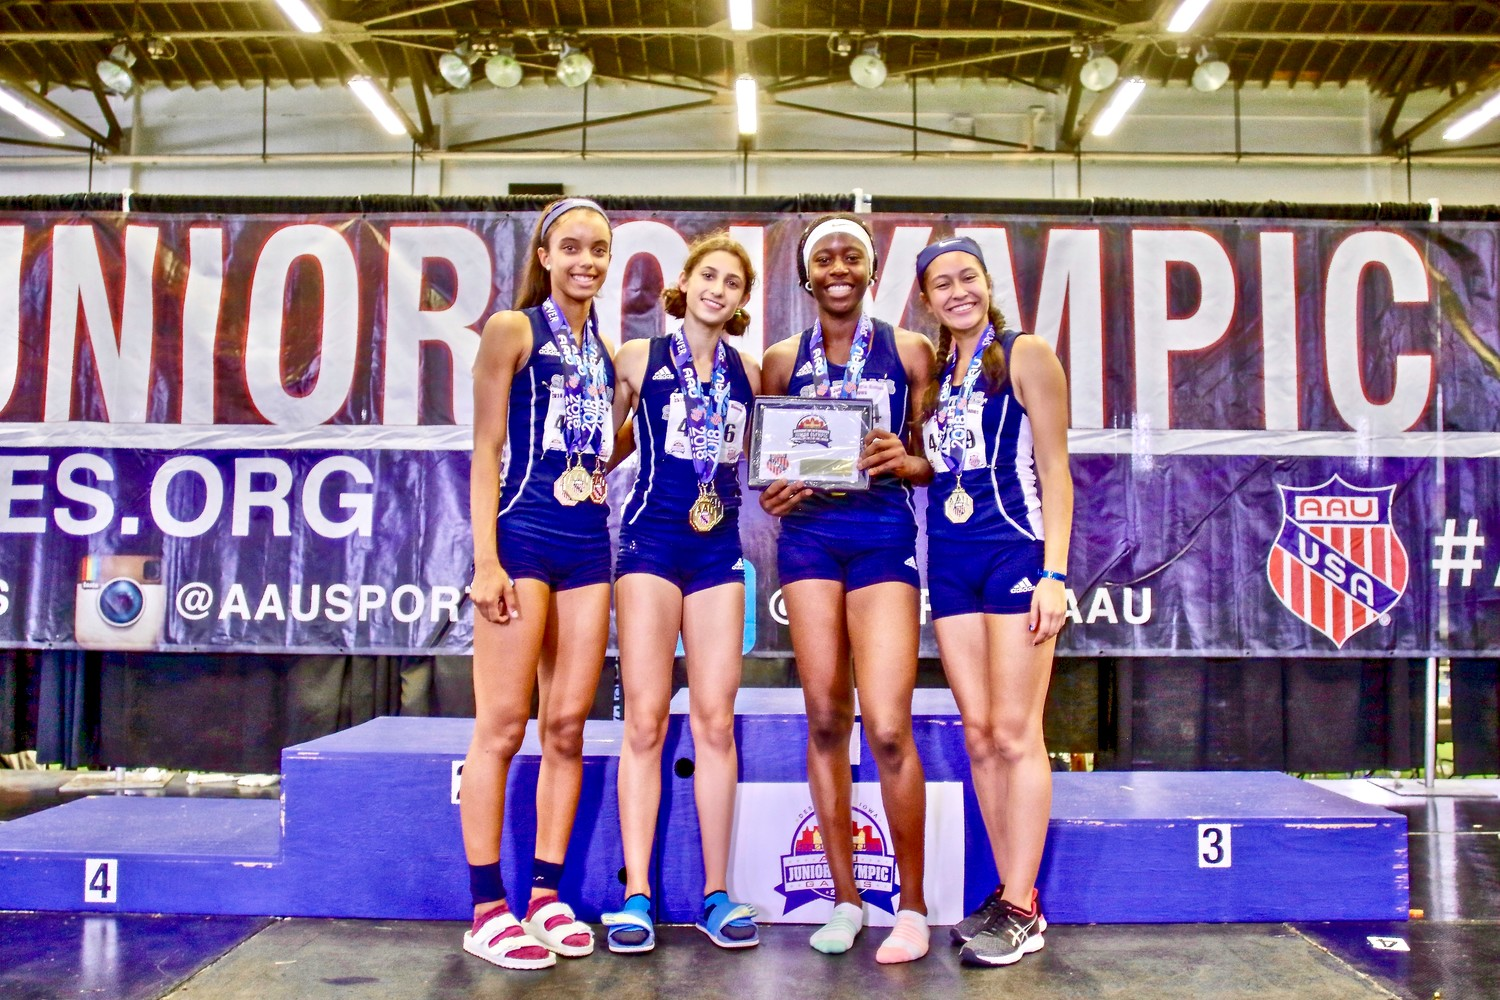 The Leander Spartans team of Hali Murphy, Elizabeth Roca, Victory Ifah and Autumn Wilson won the 4x400-meter relay at the AAU Junior Olympics on Aug. 4 at Drake University in Des Moines, Iowa.